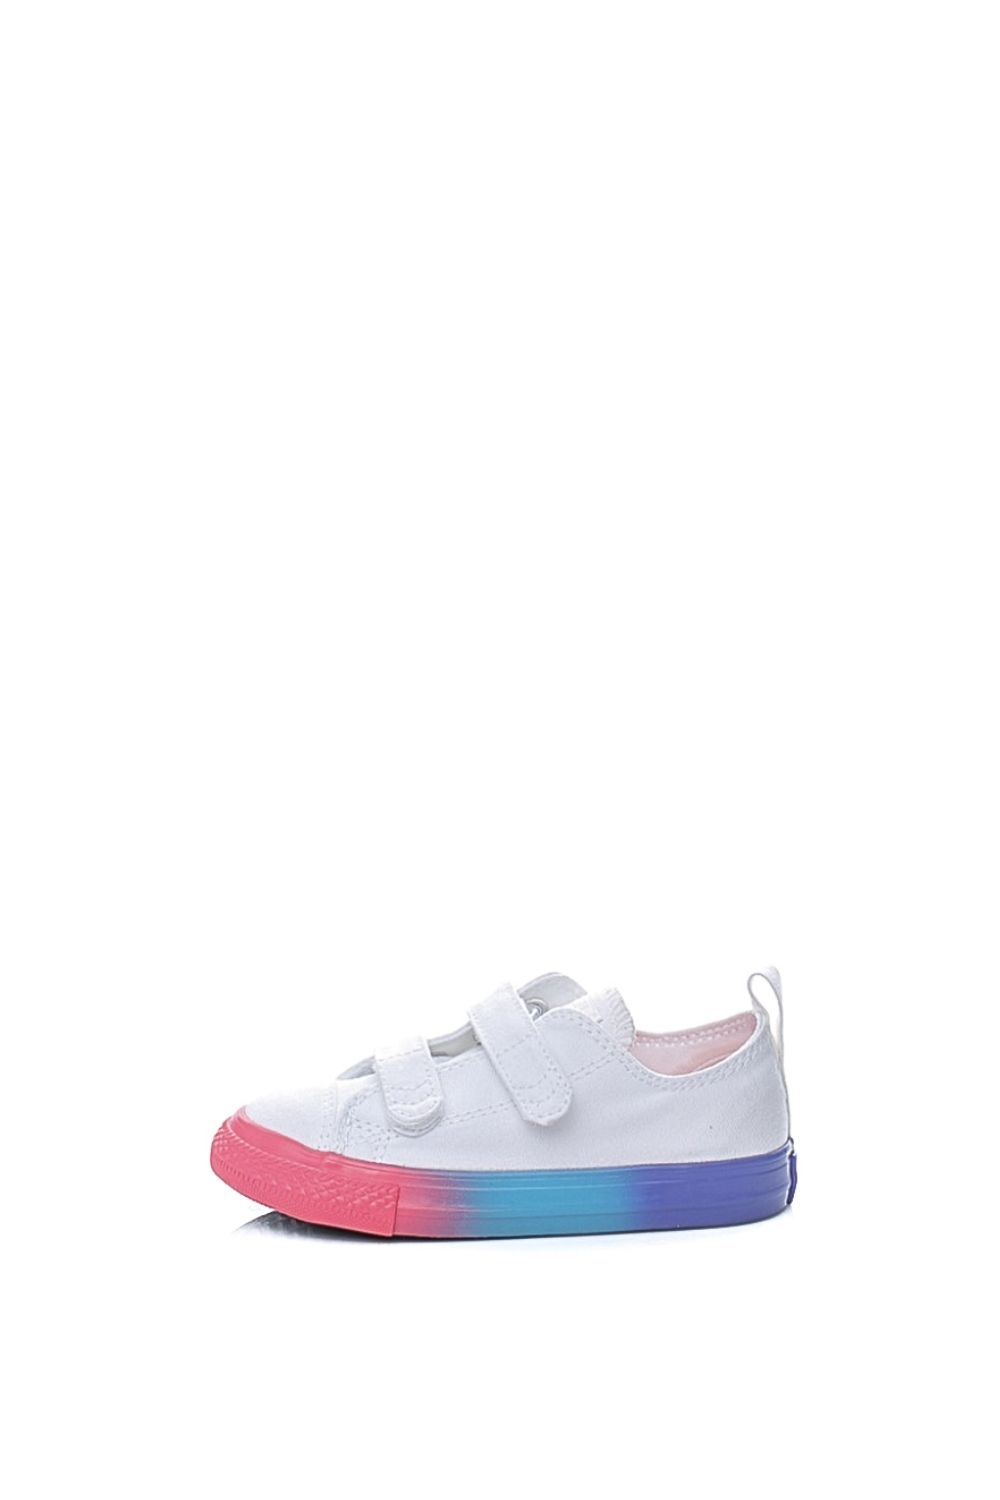 8c7278d59dd Collective Online CONVERSE – Βρεφικά παπούτσια Converse Chuck Taylor All  Star 2V λευκά